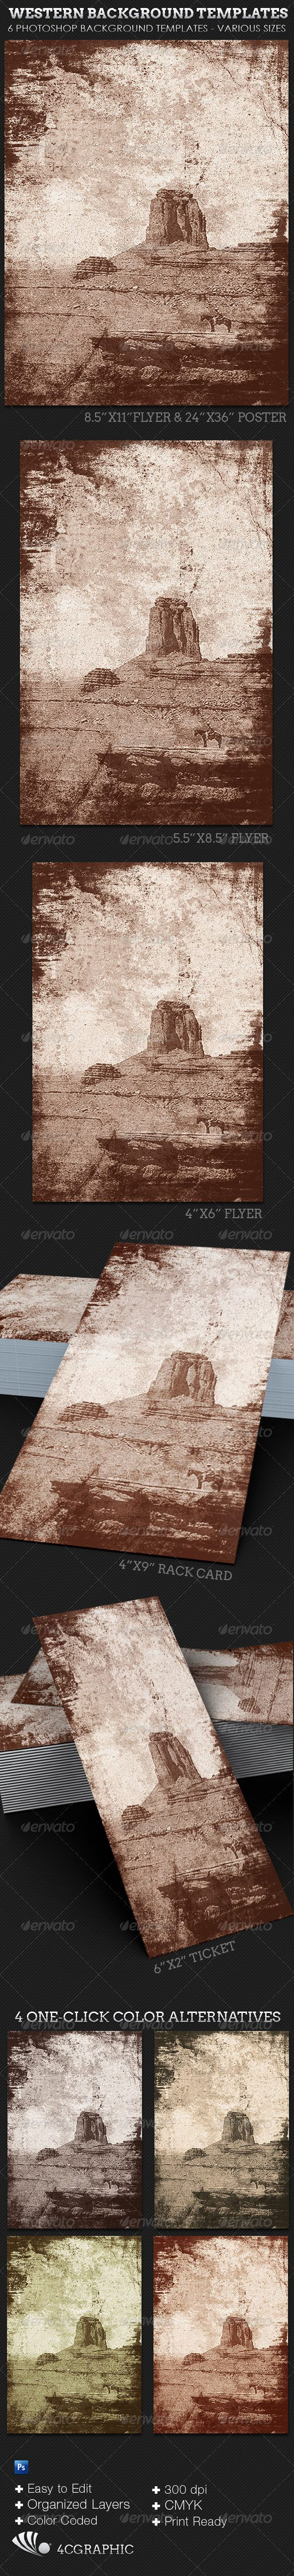 Western Background Template - Miscellaneous Photo Templates